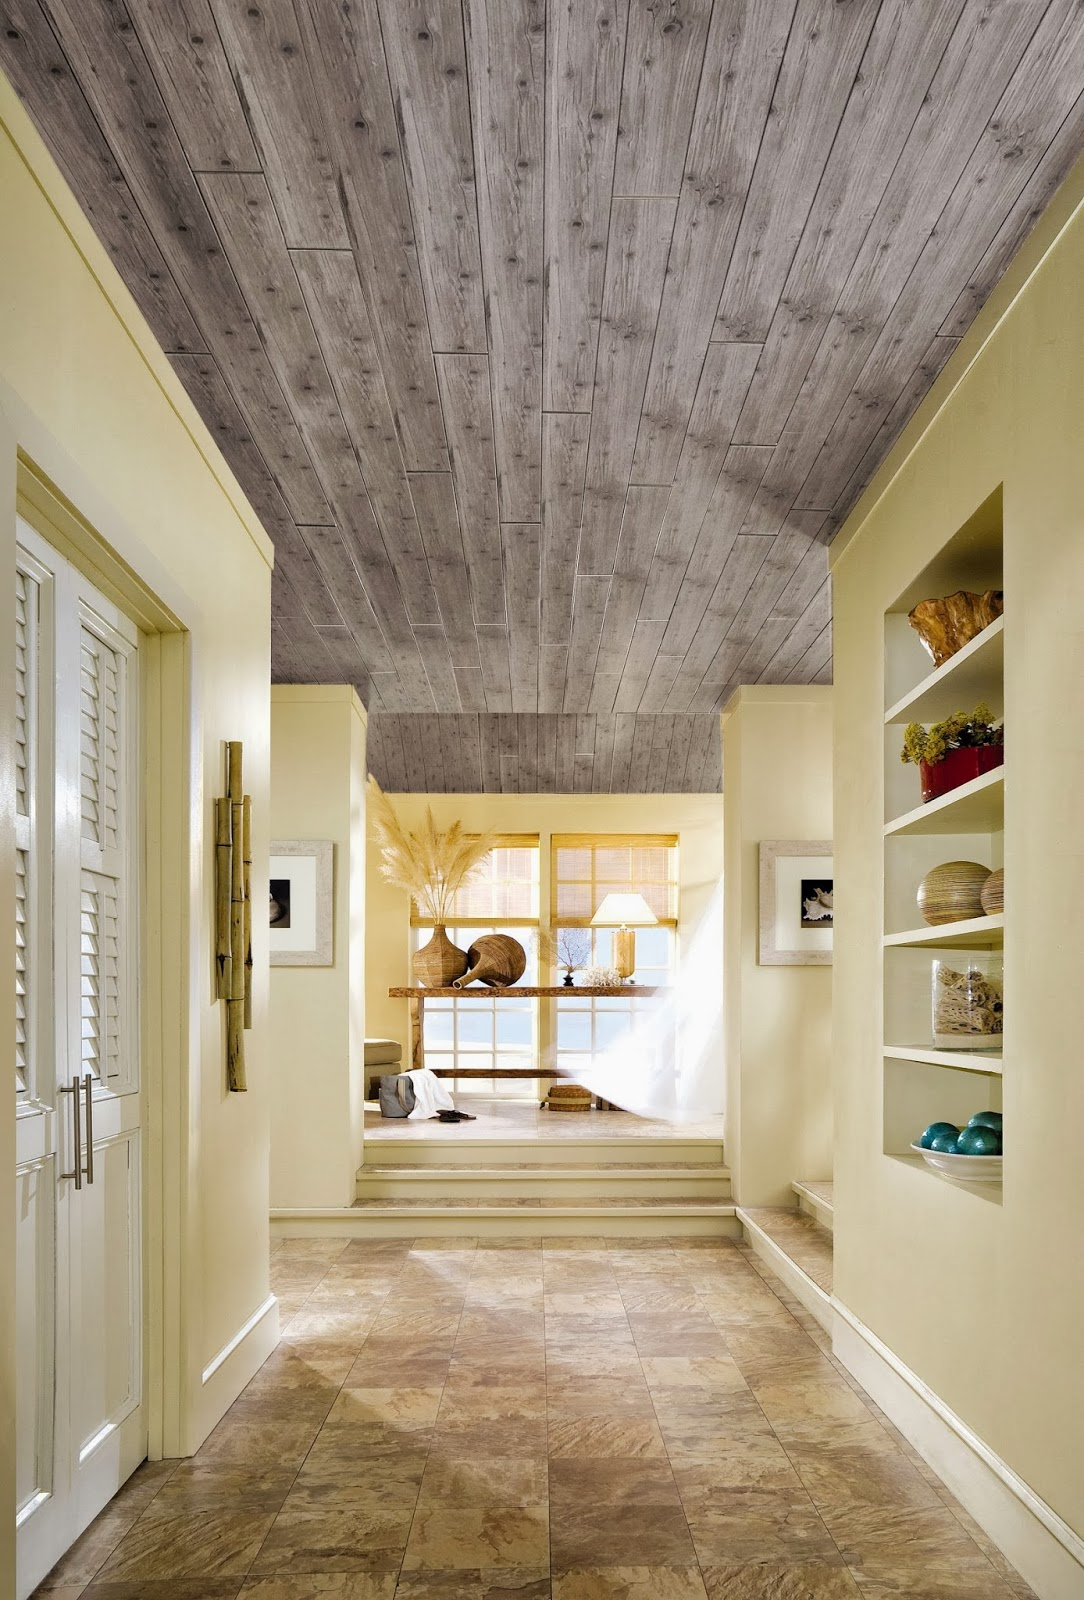 How To Hide Popcorn Ceilings Dans Le Lakehouse